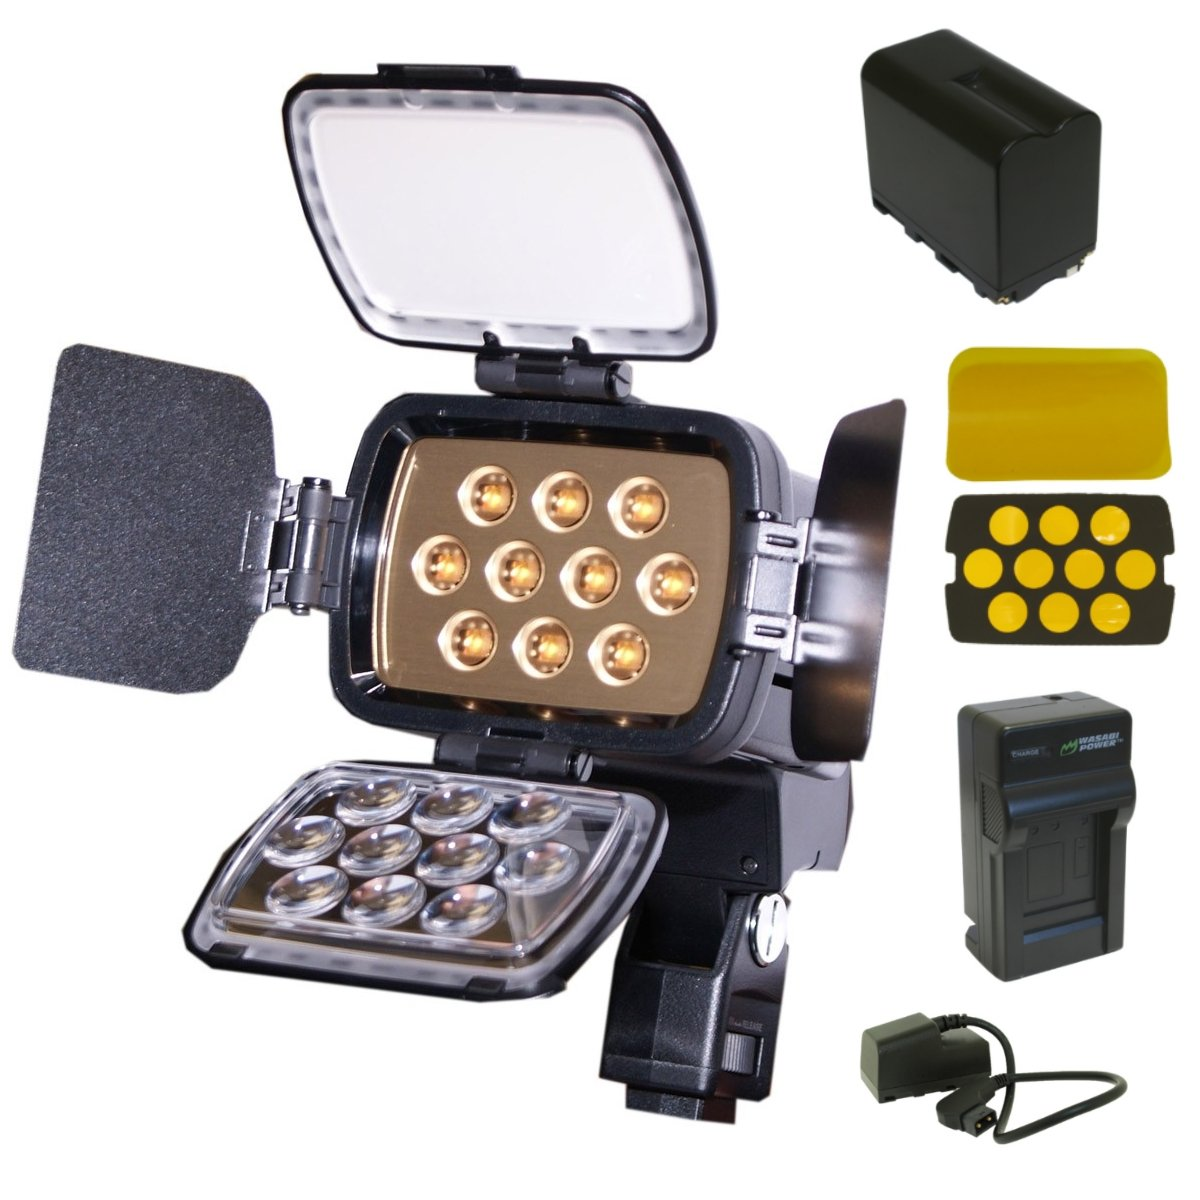 Wasabi Power Replacement for Sony HVL-LBPA / HVL-LBPB High Power LED Video Light with Battery and Charger